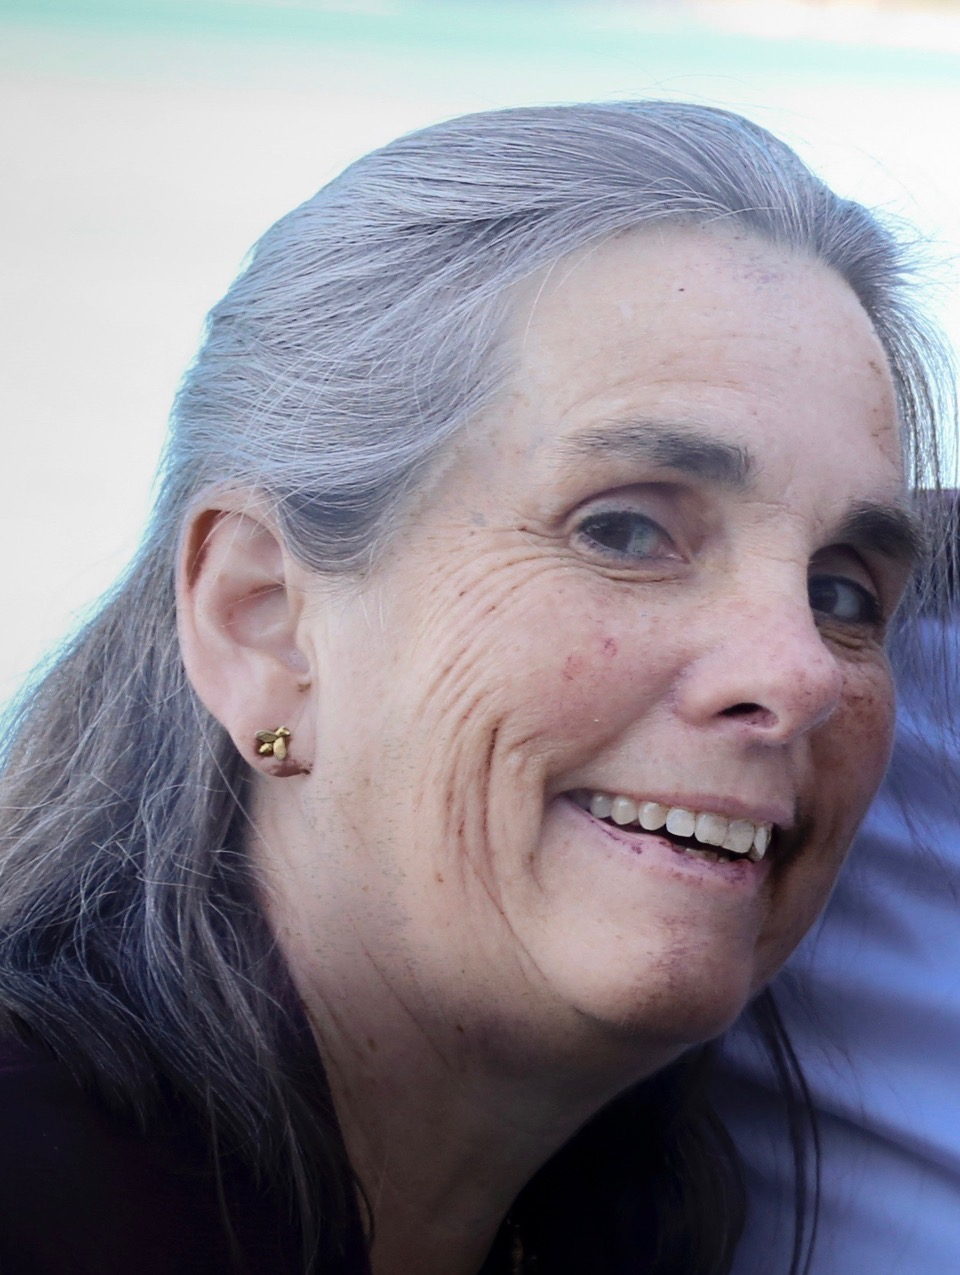 Penni Thorpe has been a student and practitioner of spiritual healing for 35 years. A retired yoga teacher, she has found home in shamanism. influenced by Tom Cowan, RJ Stewart and the Lorian Foundation; in 2018 she received certification from Carla Meeske's Spirit Healer School.